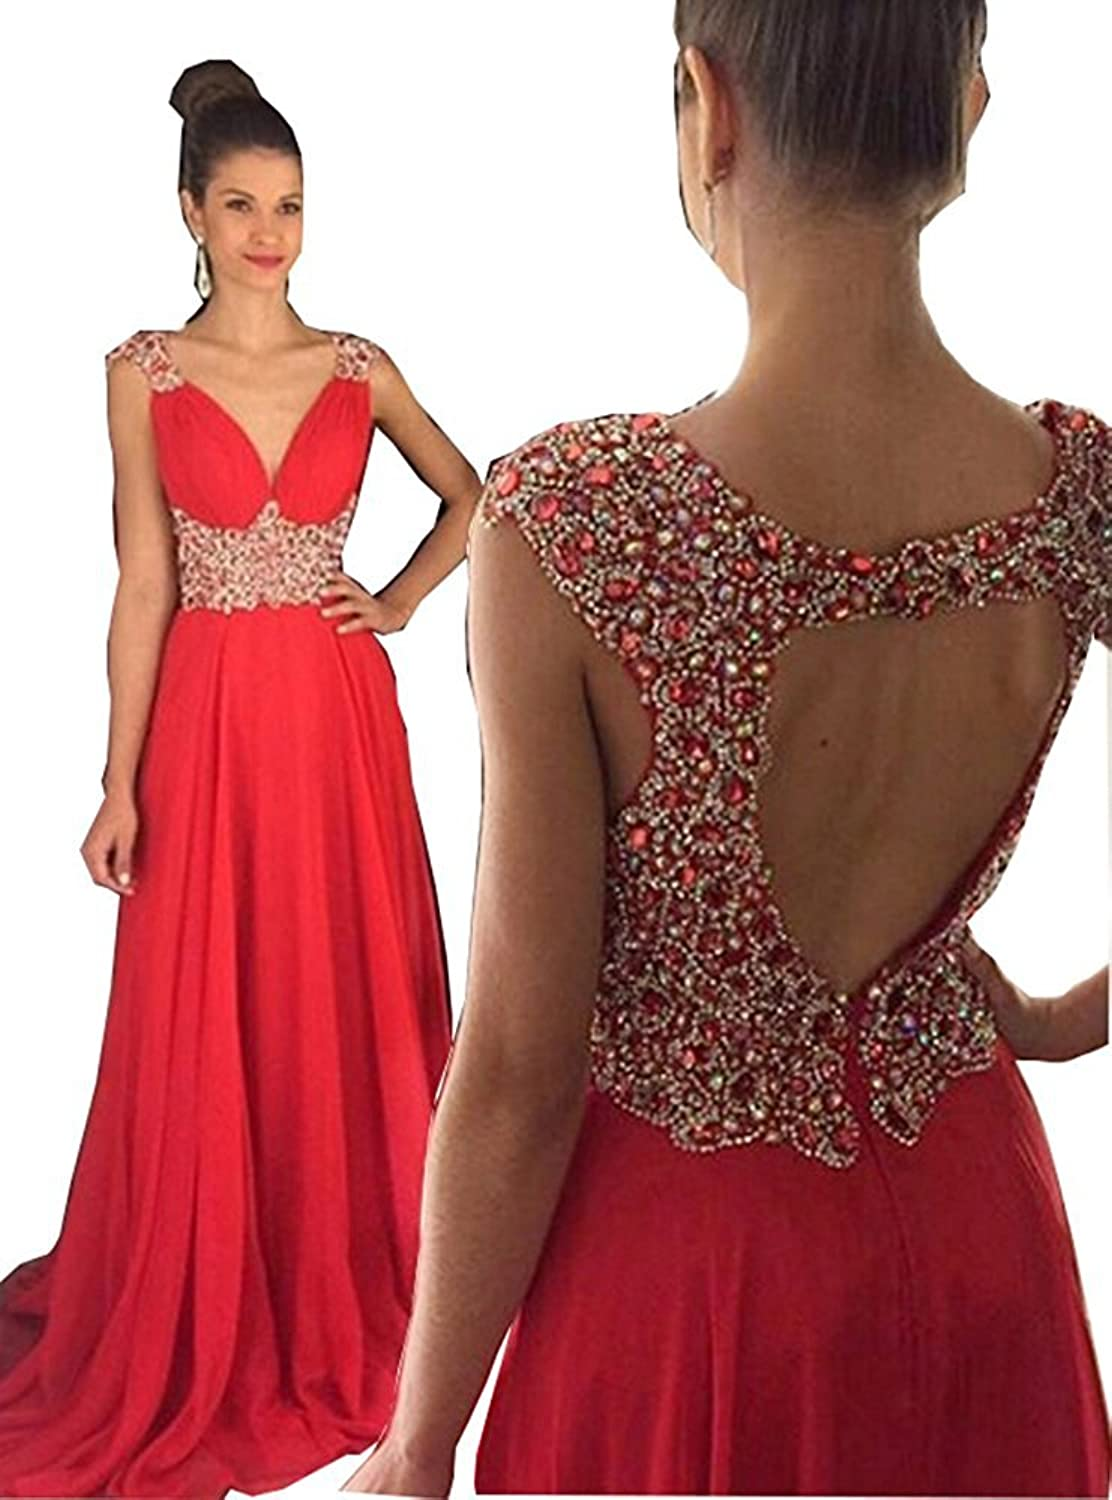 Changjie Women's Backless Beading Prom Dress 2017 Long Formal Evening Party Gown